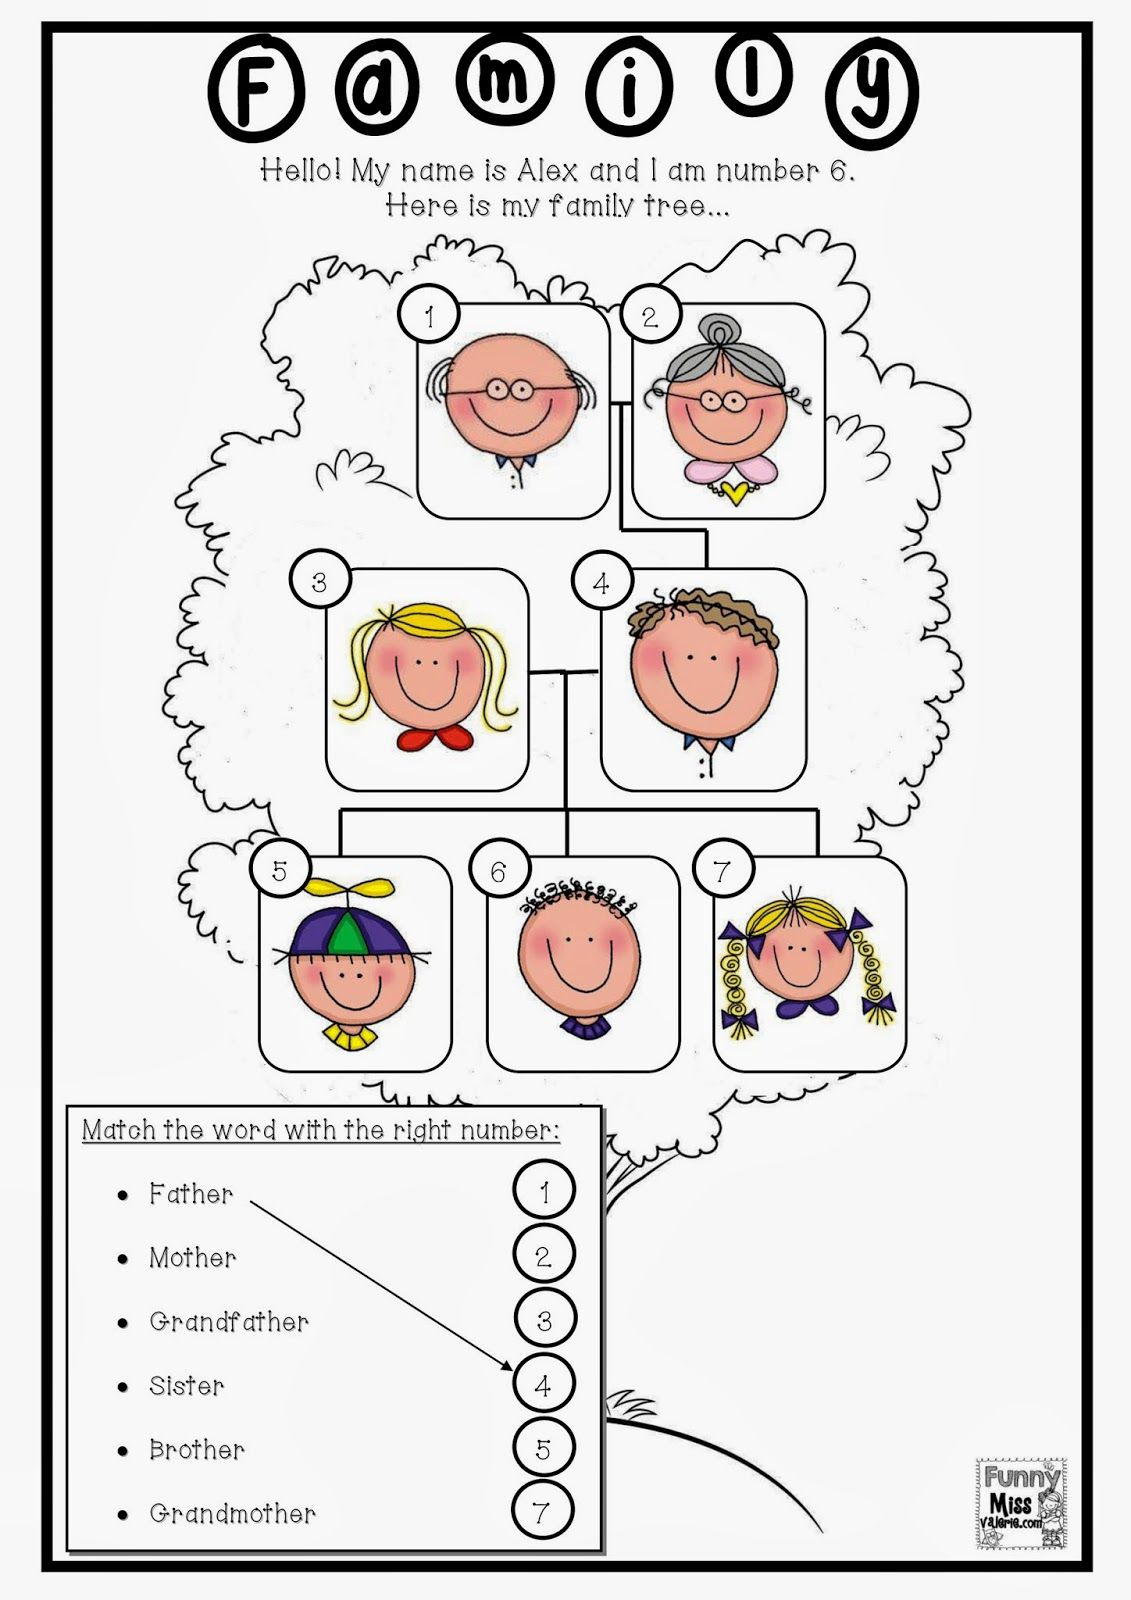 worksheet Family Tree Worksheets 1000 images about family on pinterest tree worksheet vocabulary worksheets and student centered resources